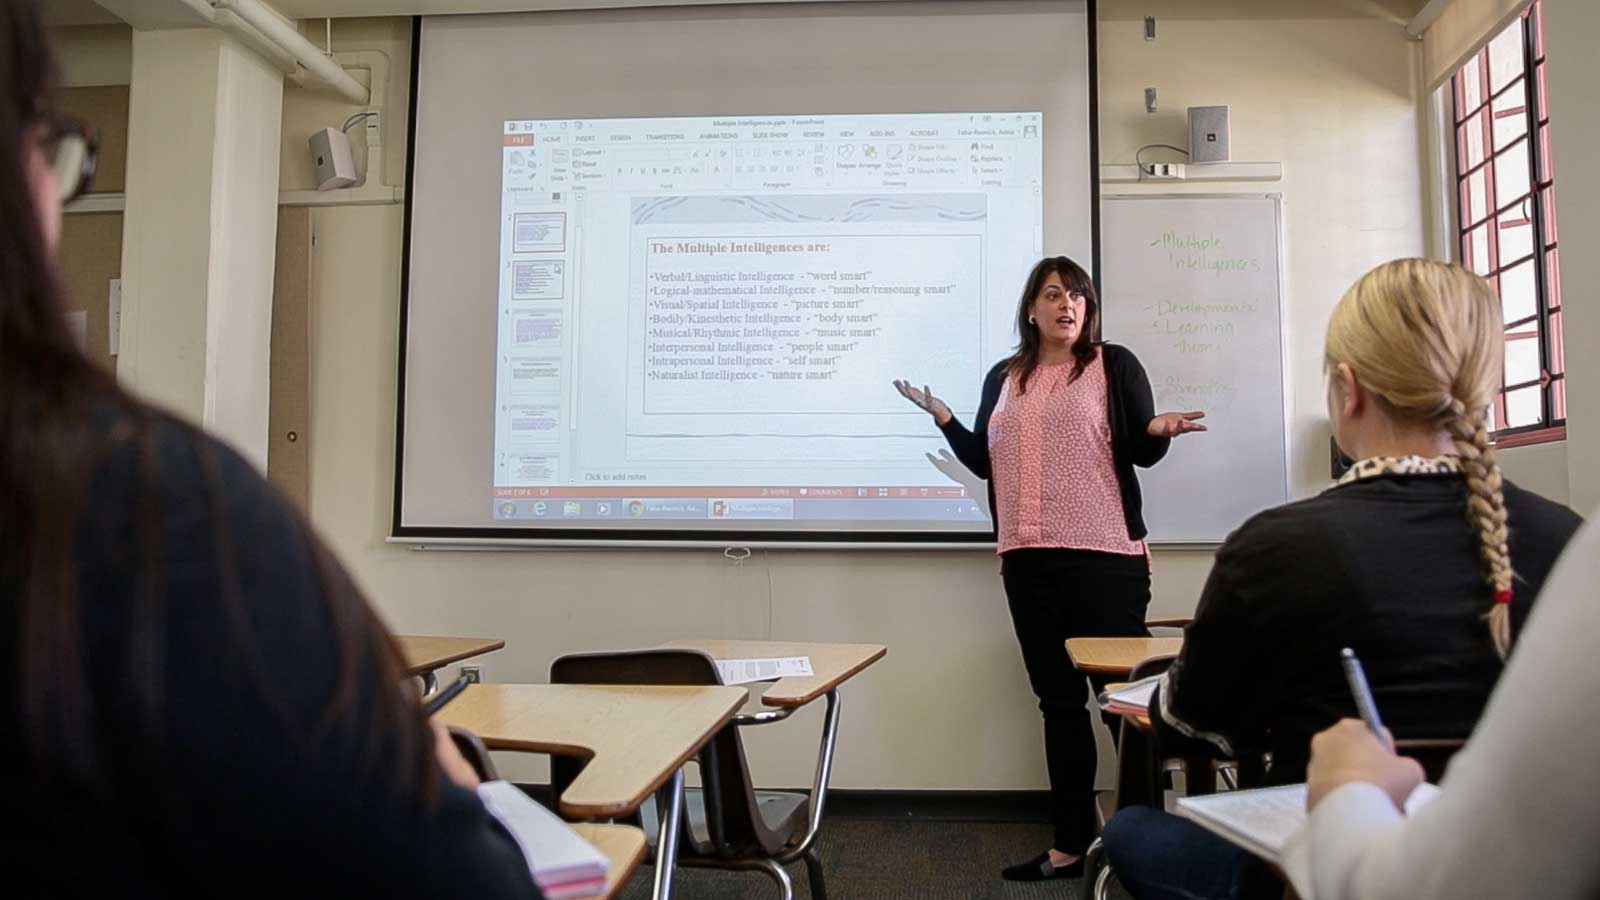 Adria Taha-Resnick lectures on Multiple Intelligences in an Early Childhood Studies class